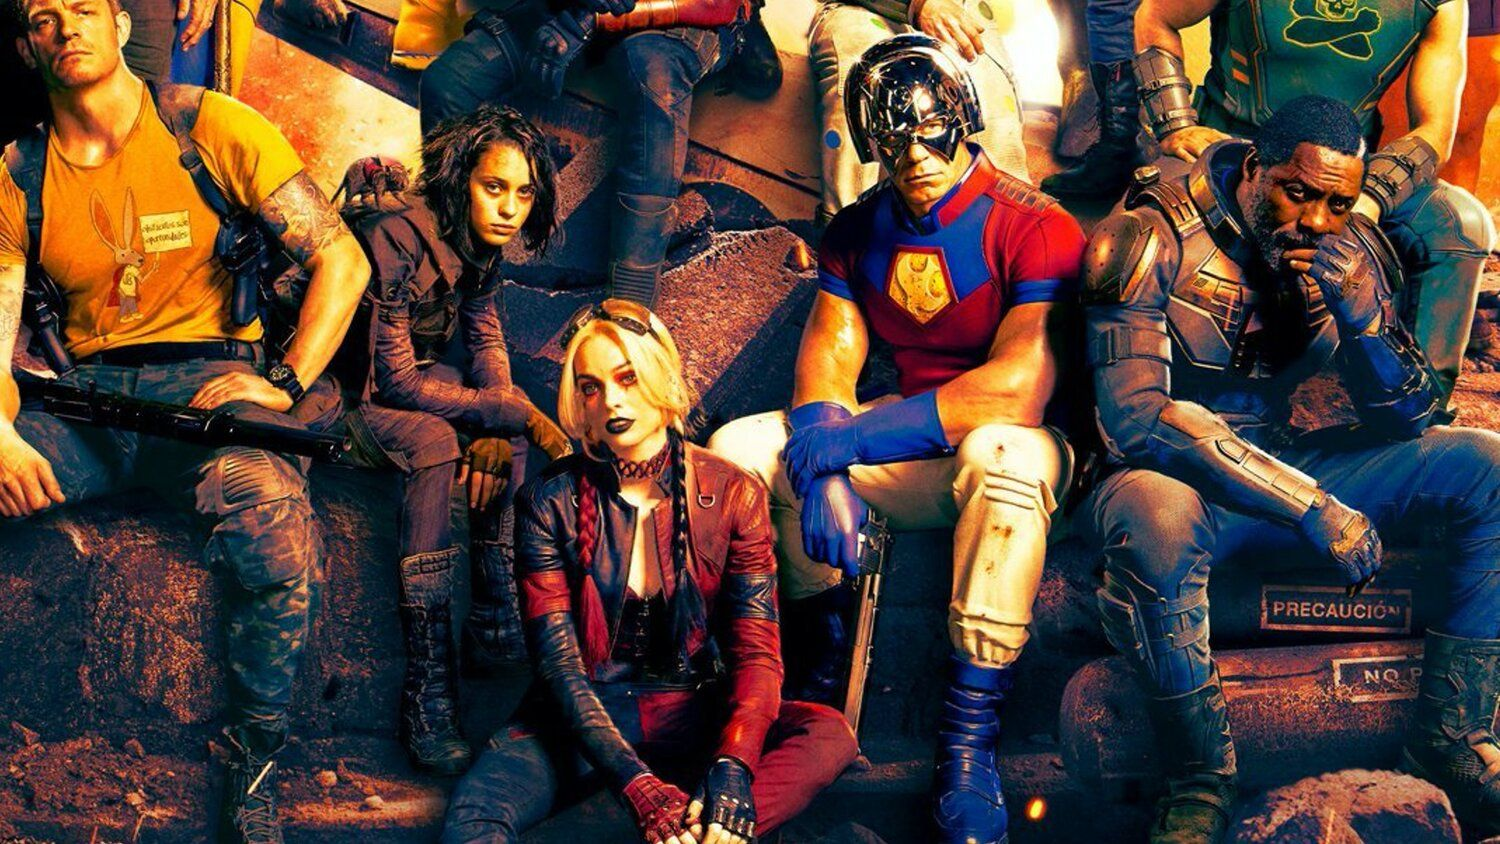 James Gunn Says None of THE SUICIDE SQUAD Characters Were Protected By DC